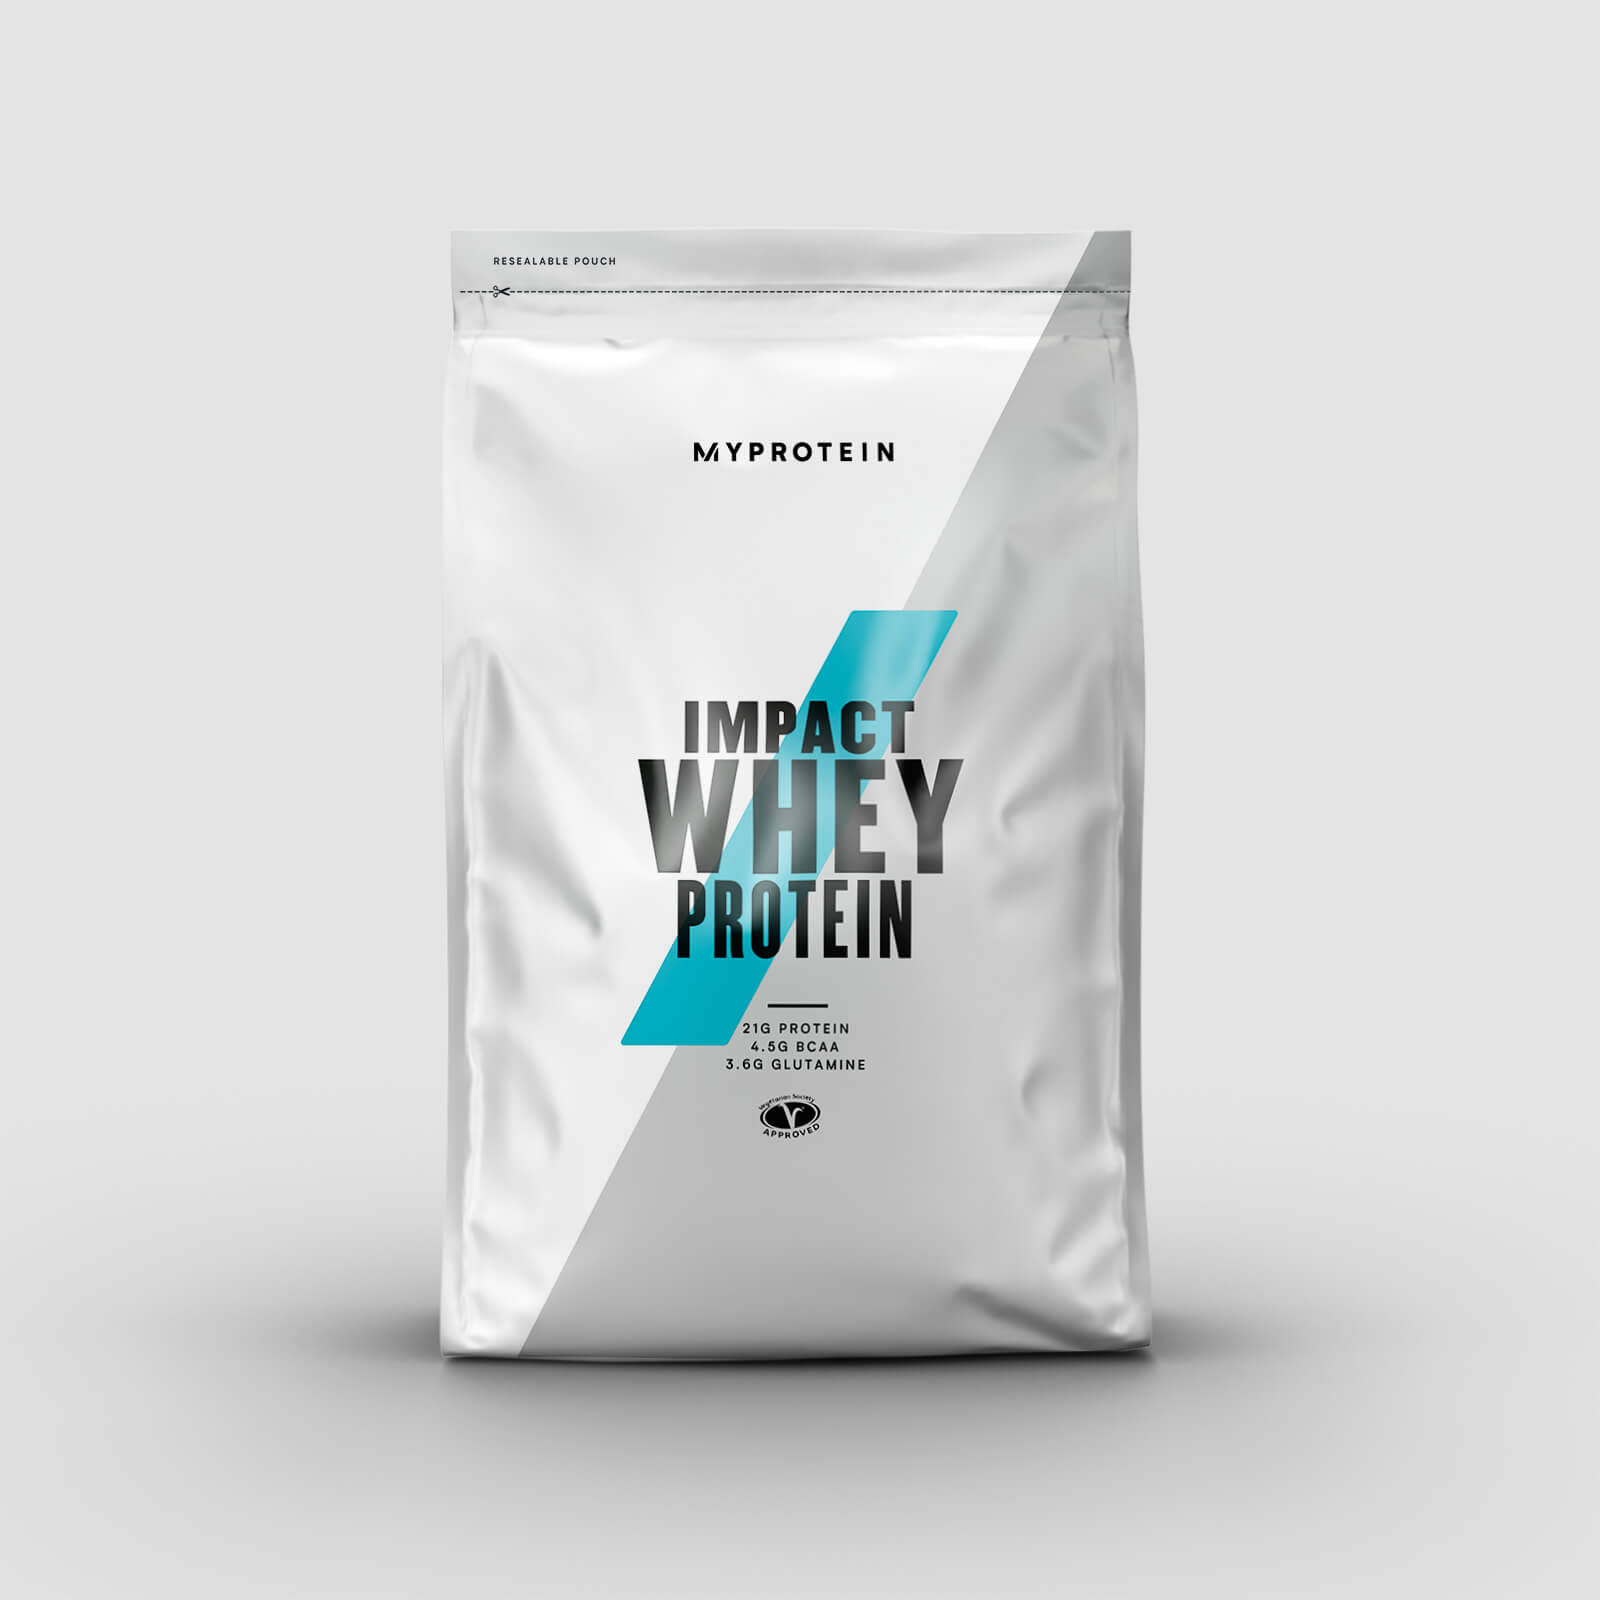 MyProtein Impact Whey Protein - Chocolate Mint